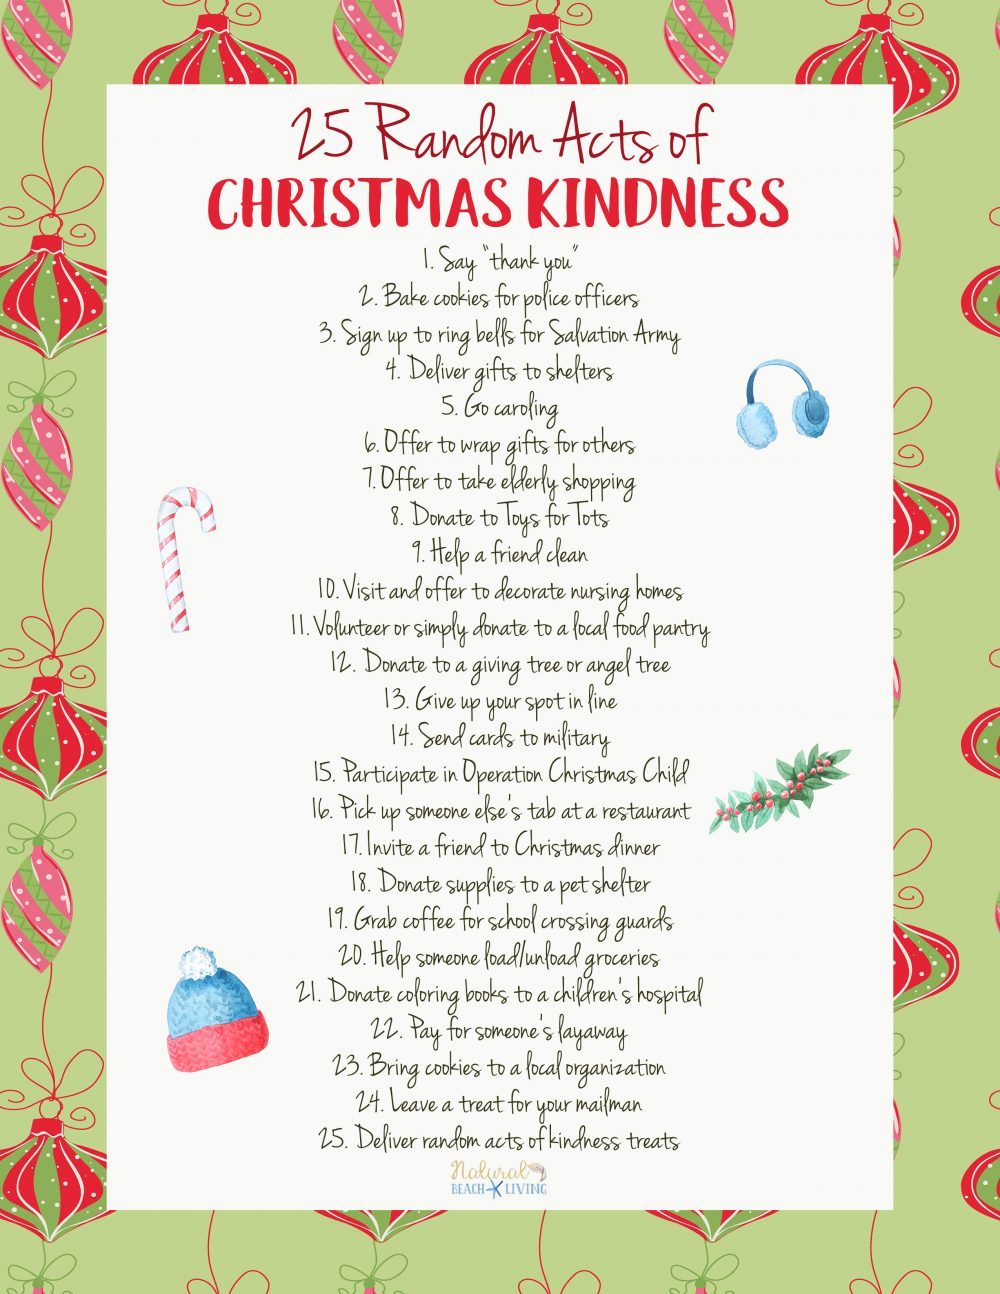 25 Random Acts of Christmas Kindness Printable - Natural Beach Living